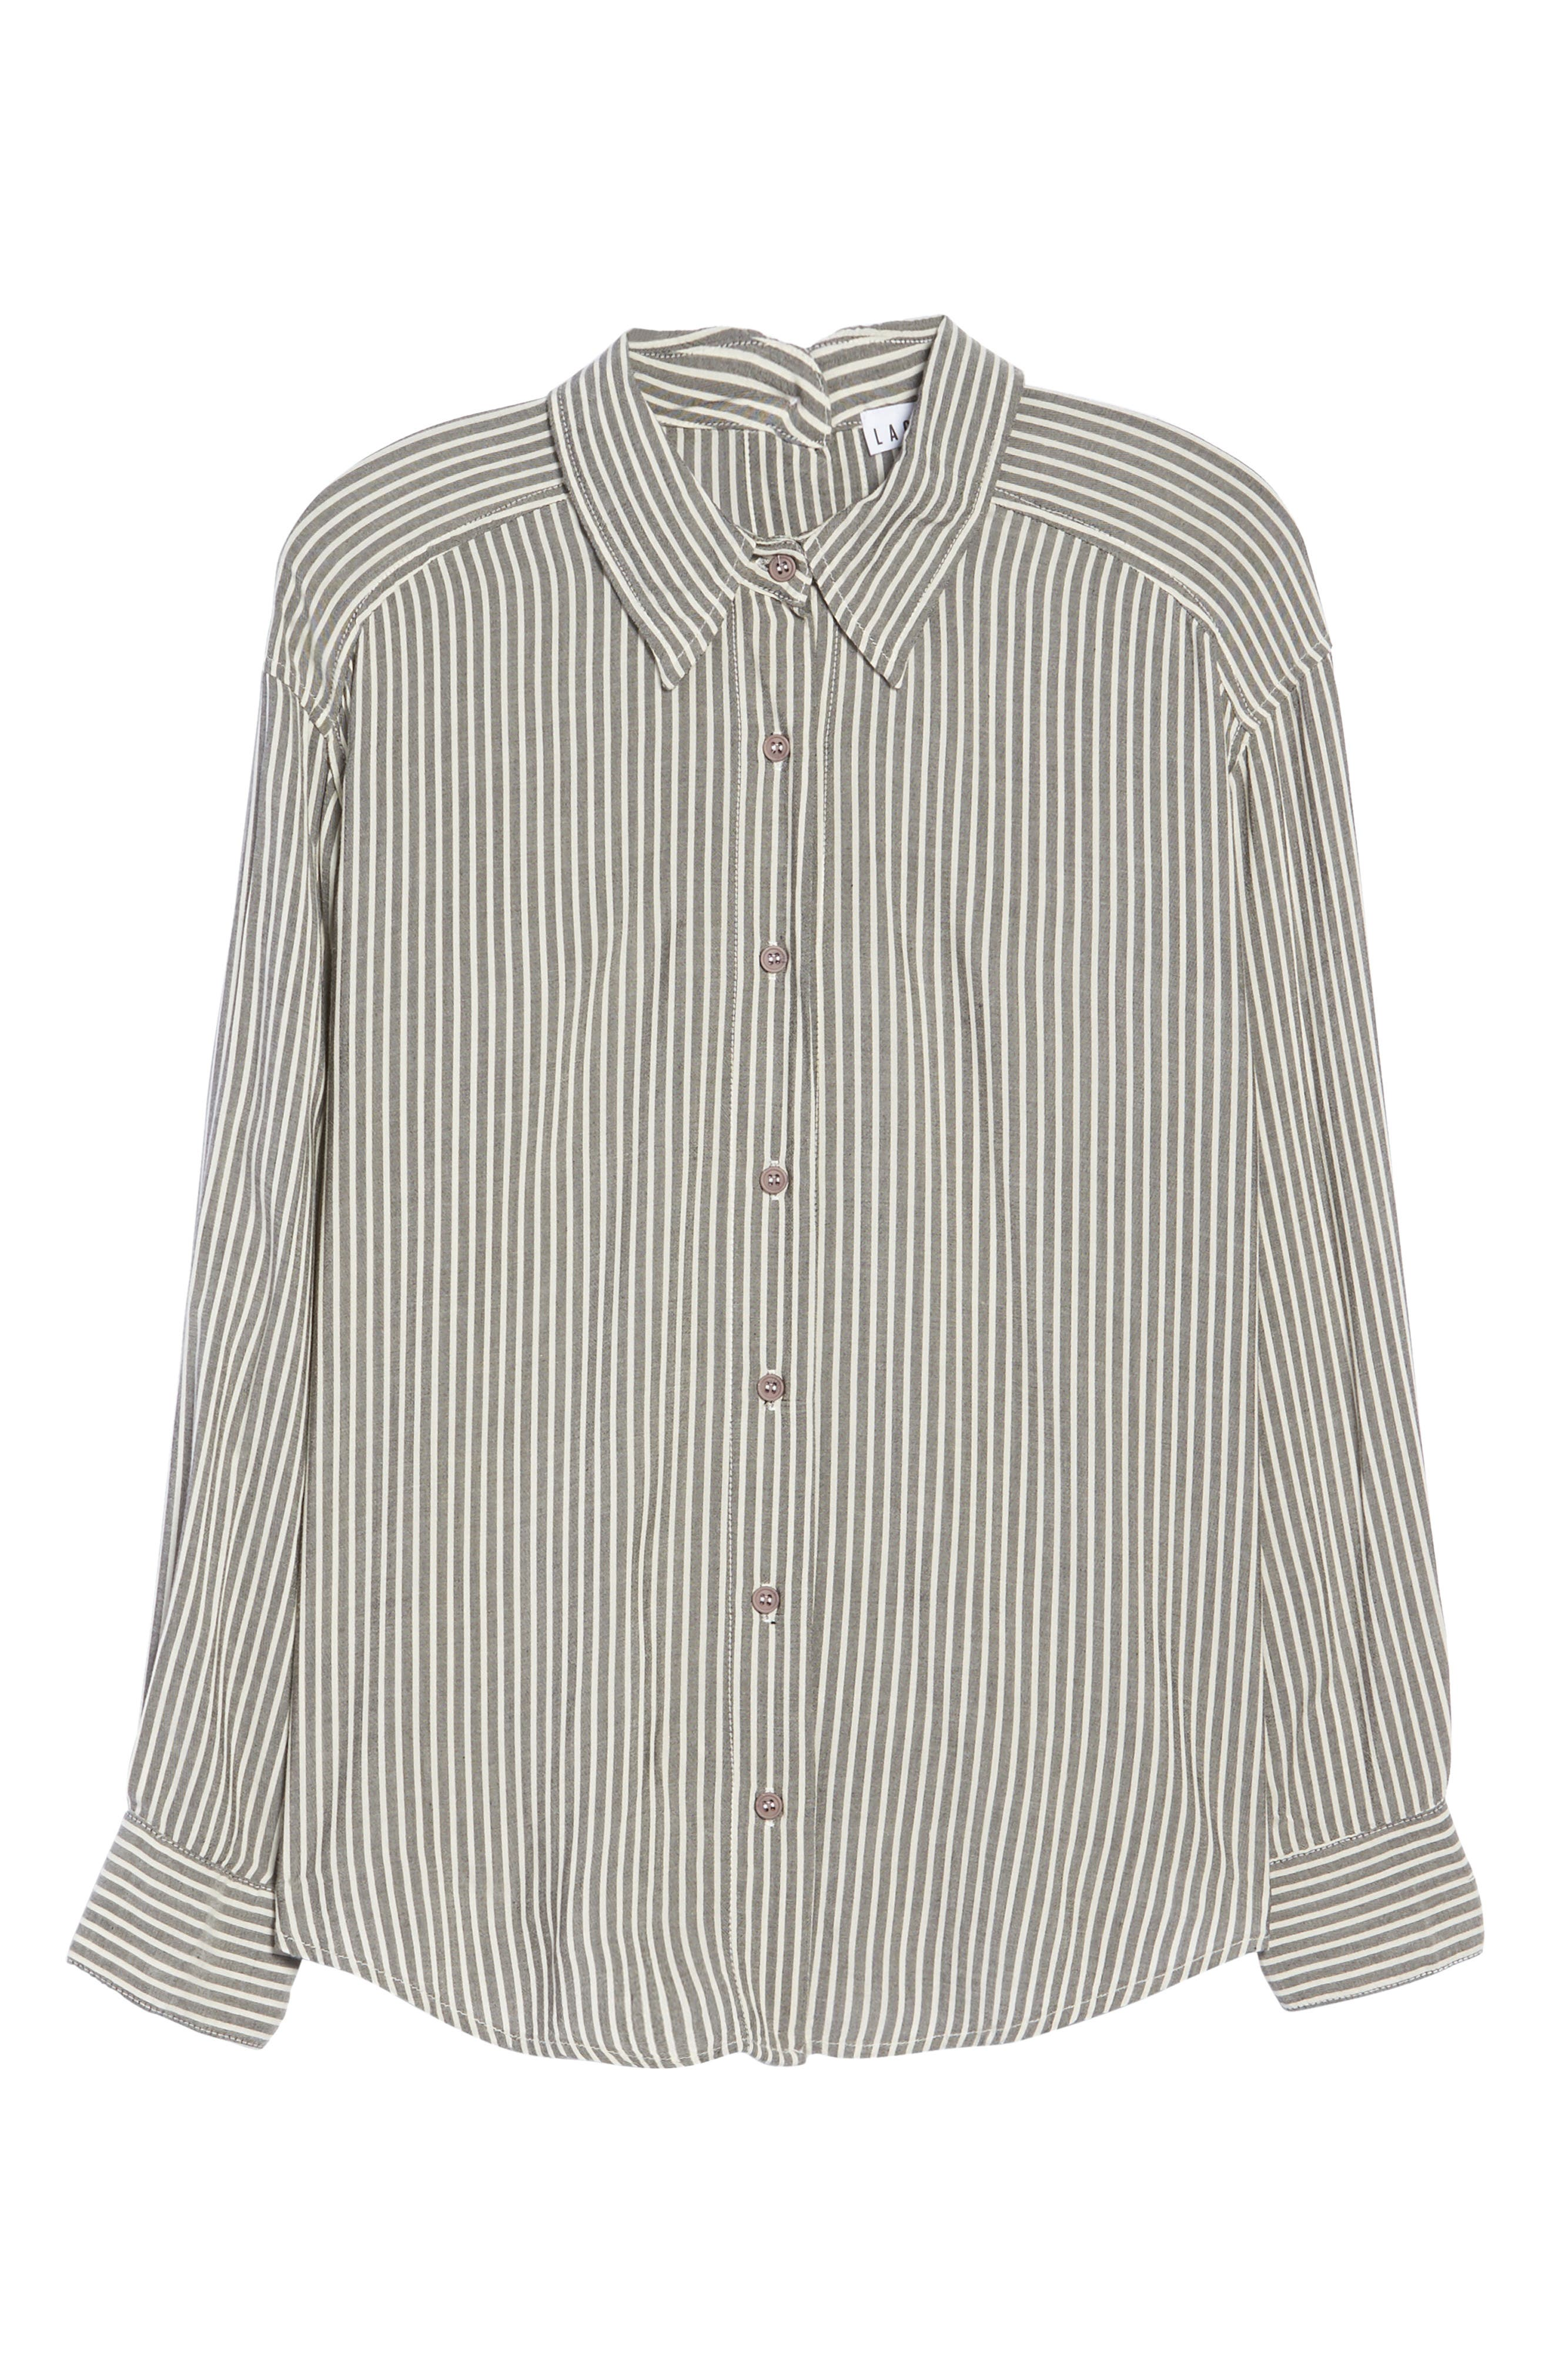 Stripe Top,                             Alternate thumbnail 4, color,                             Grey Stripe